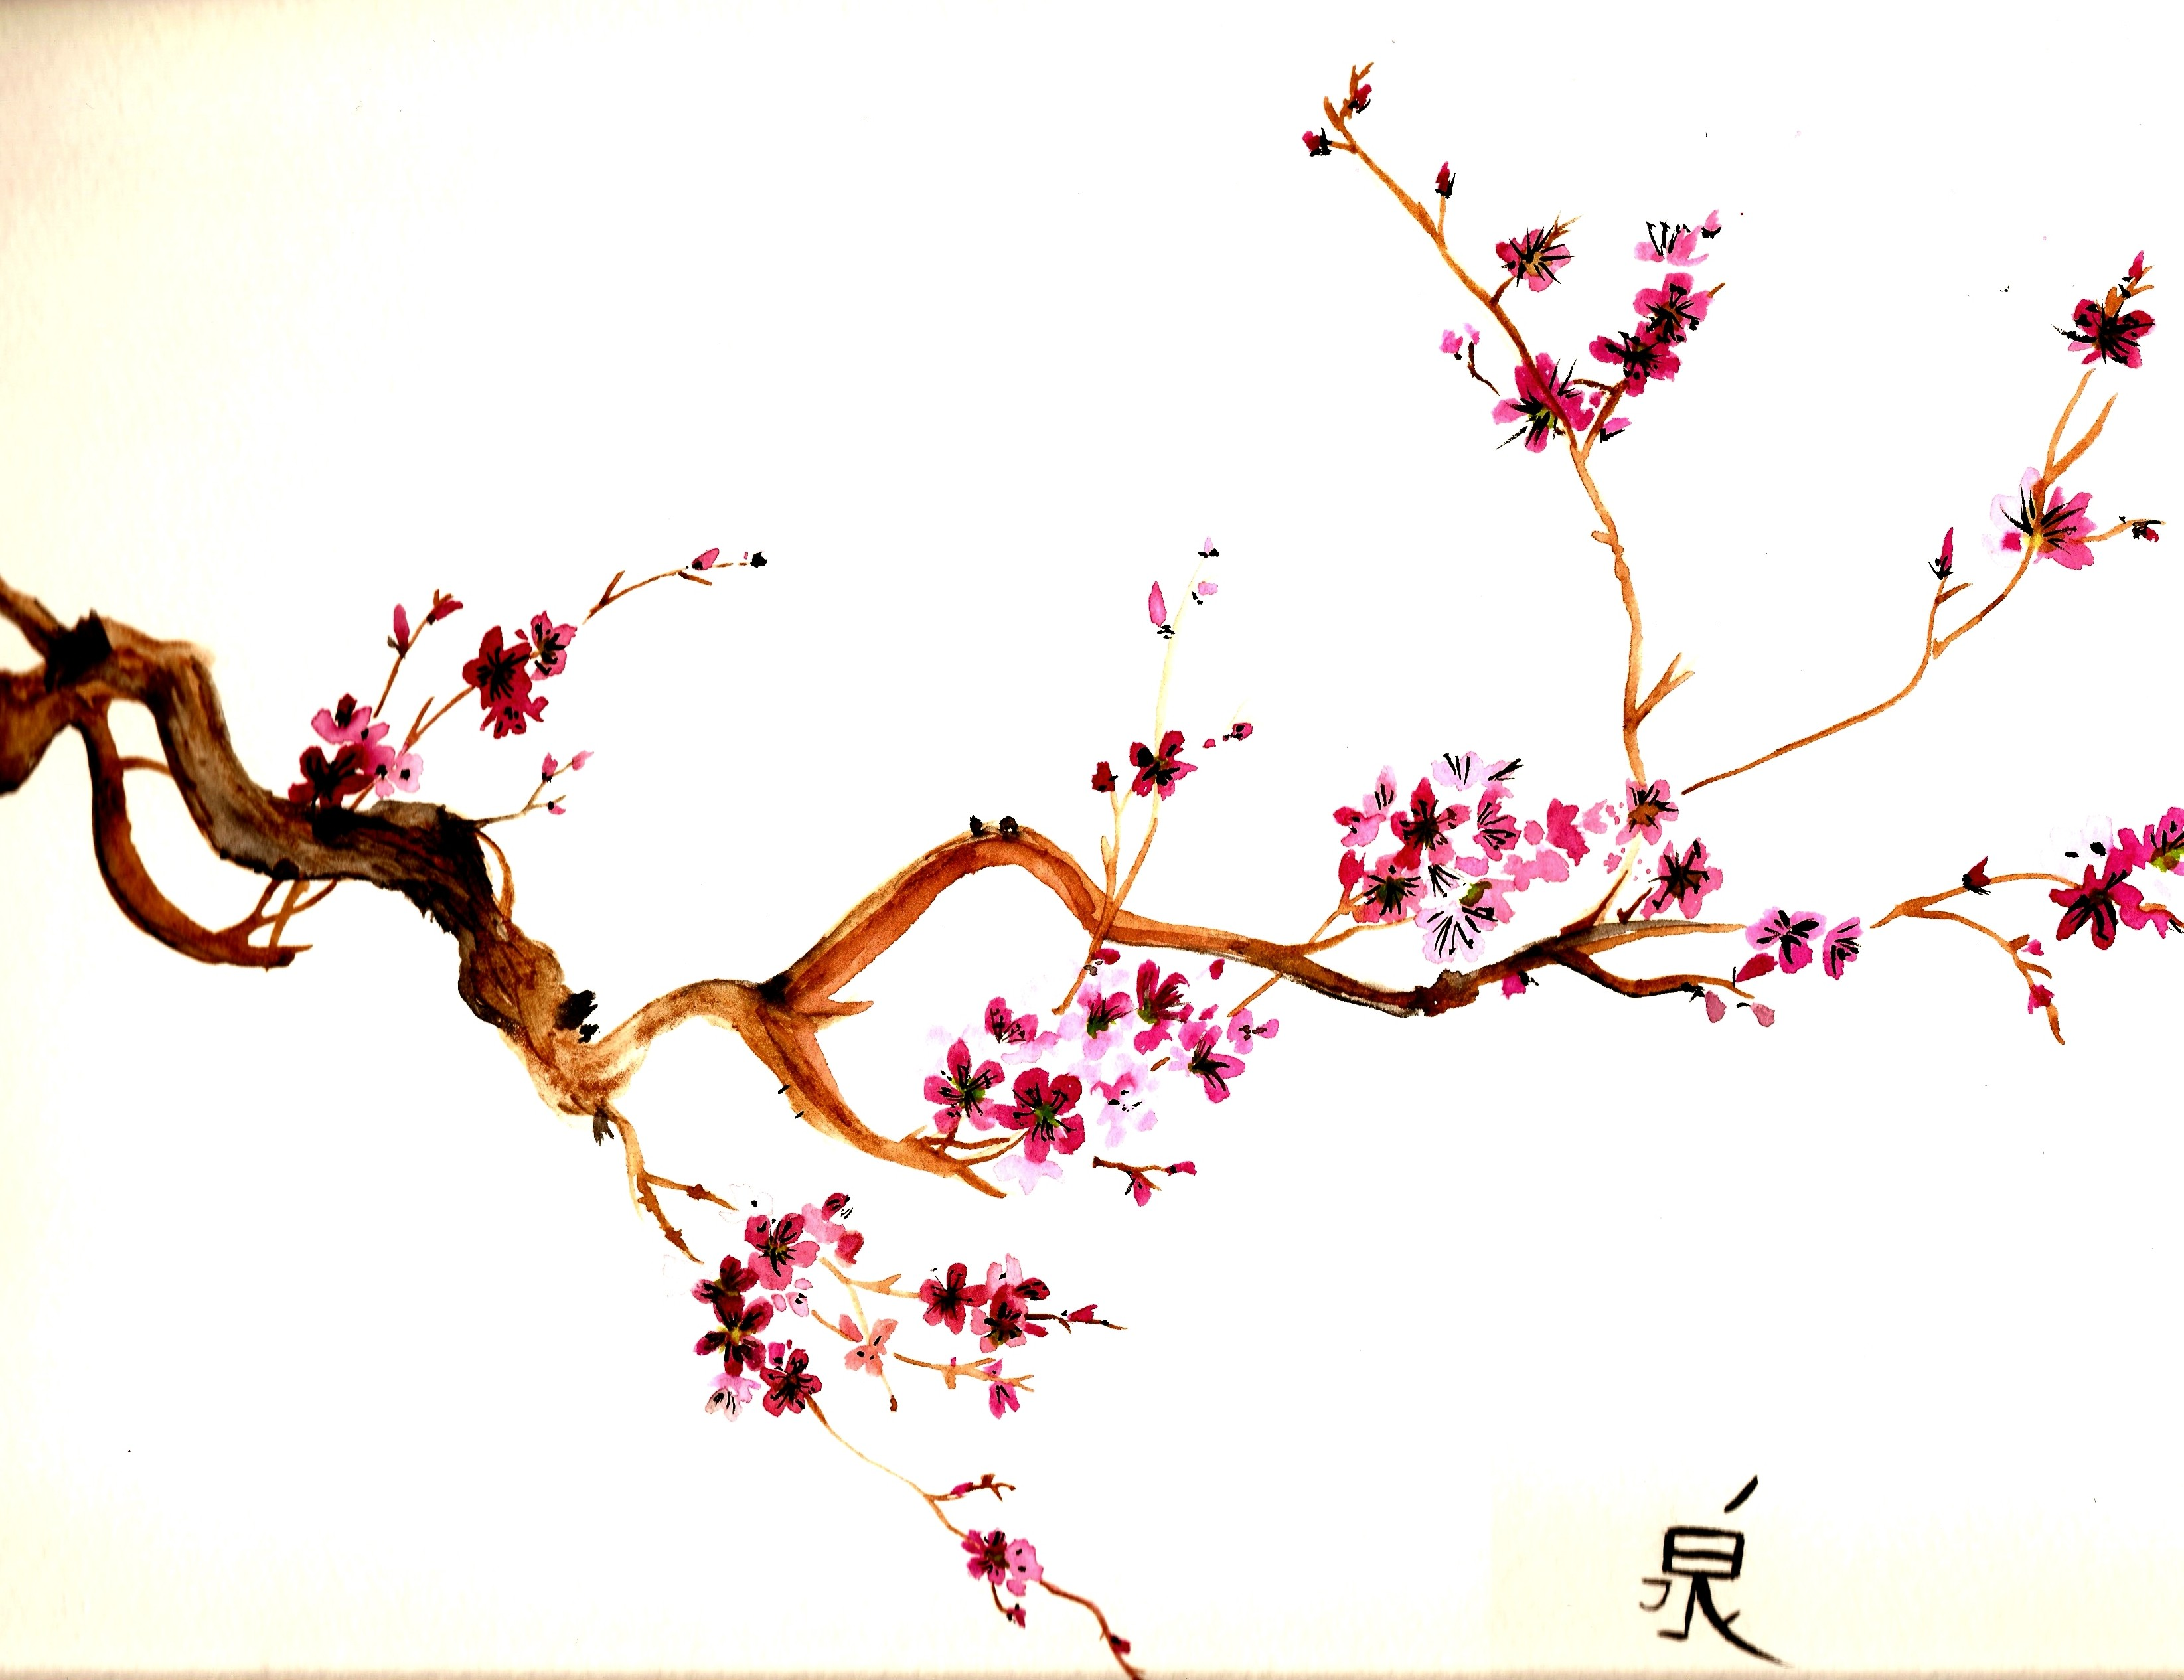 3290x2531 Blossom Drawing, Pencil, Sketch, Colorful, Realistic Art Images